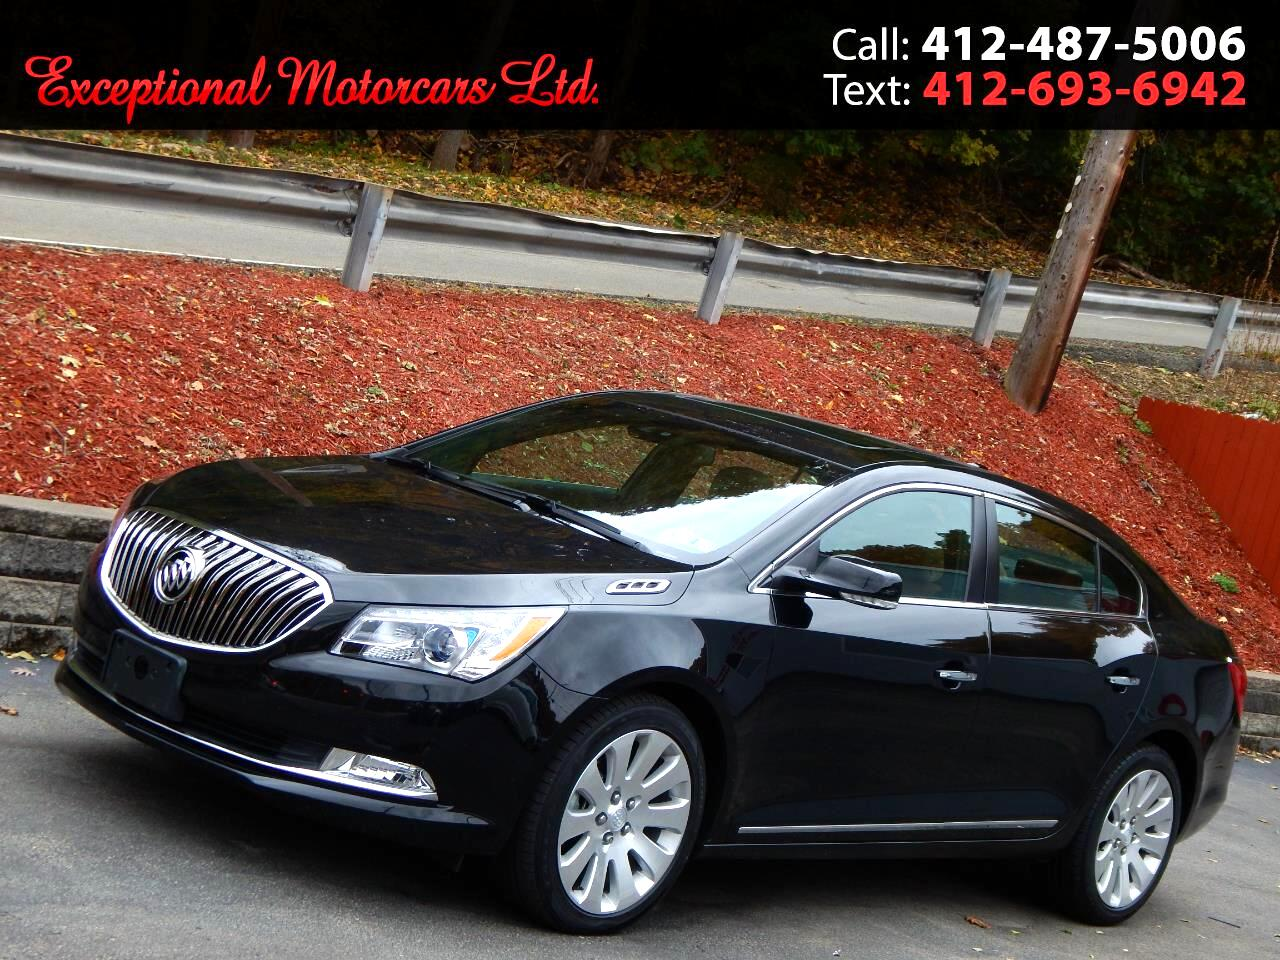 2016 Buick LaCrosse 4dr Sdn Leather AWD